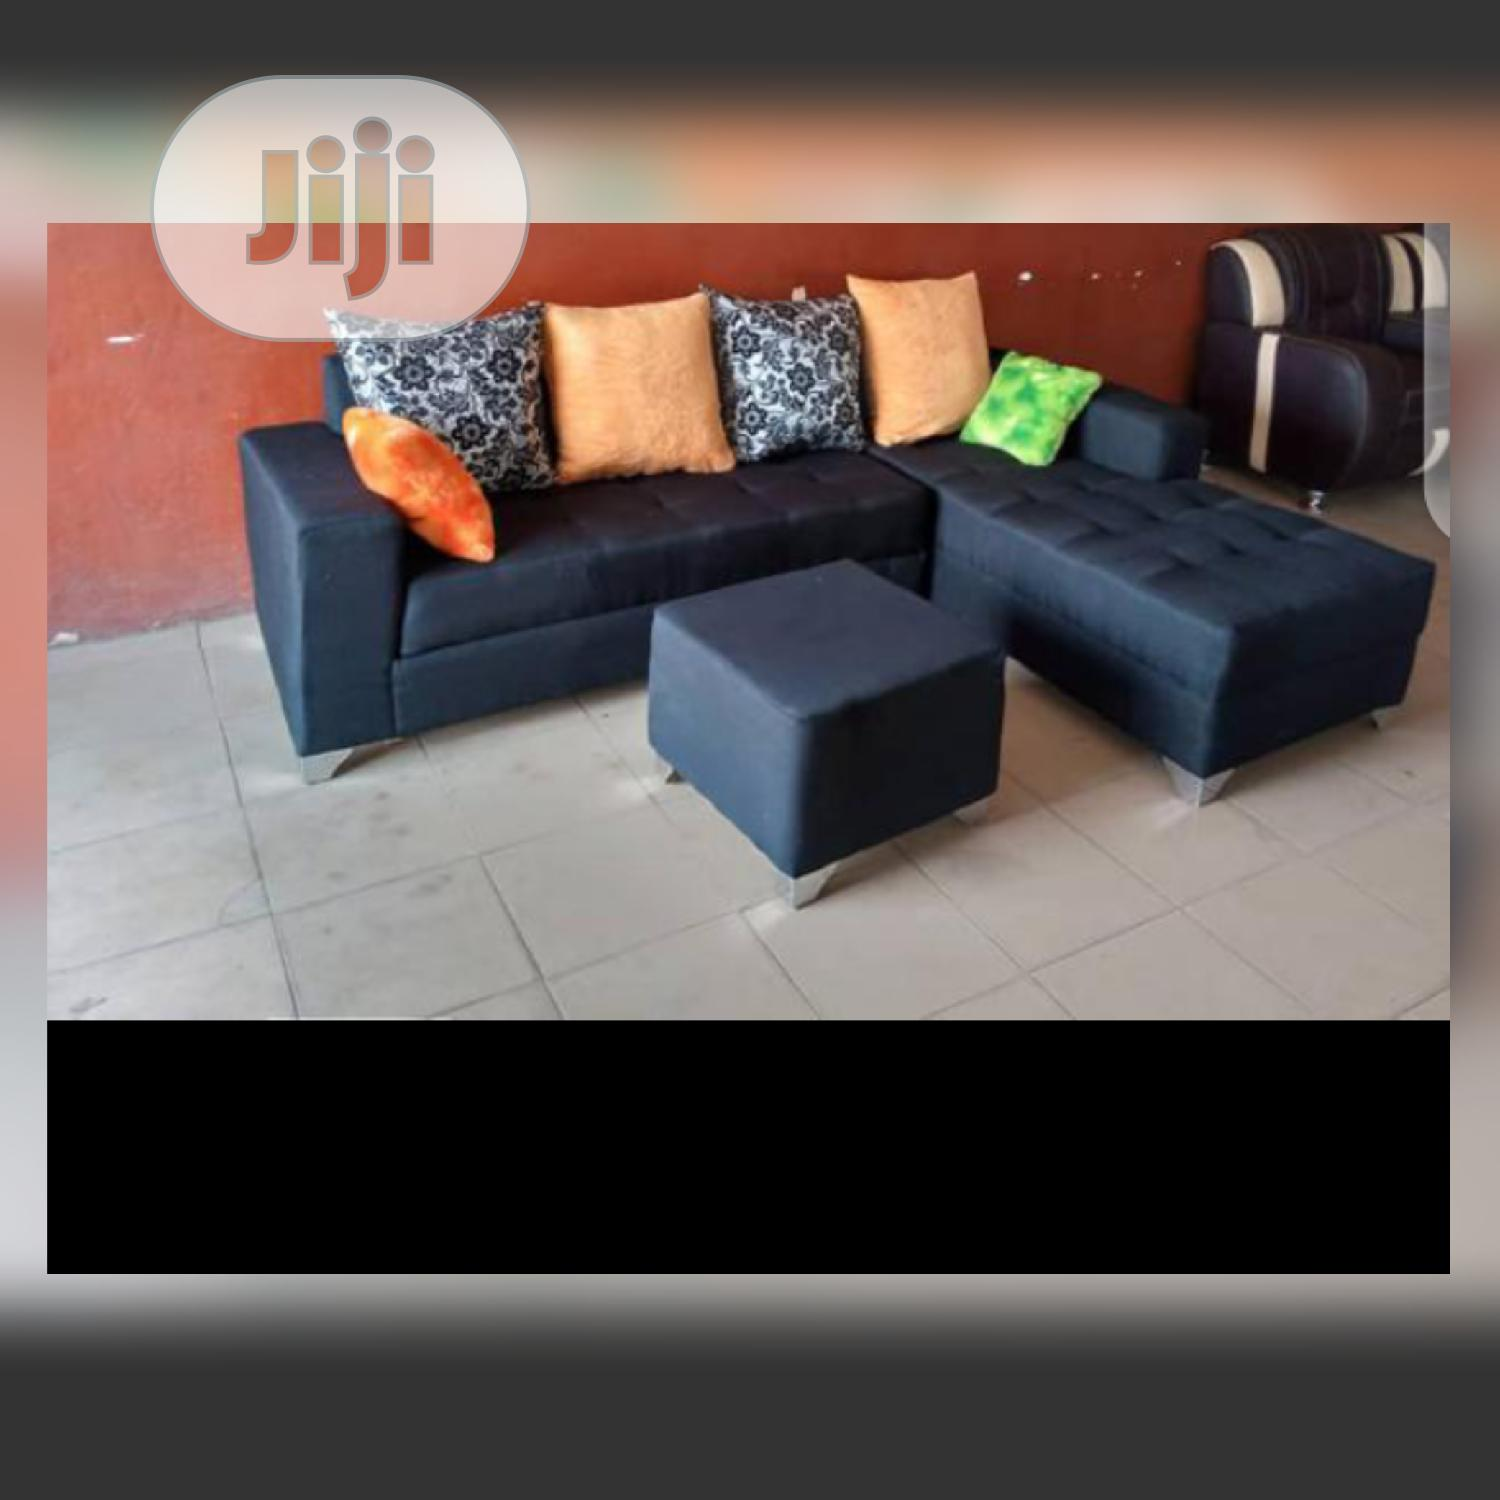 New Set of L-Shaped Fabric Sofa With an Ottoman